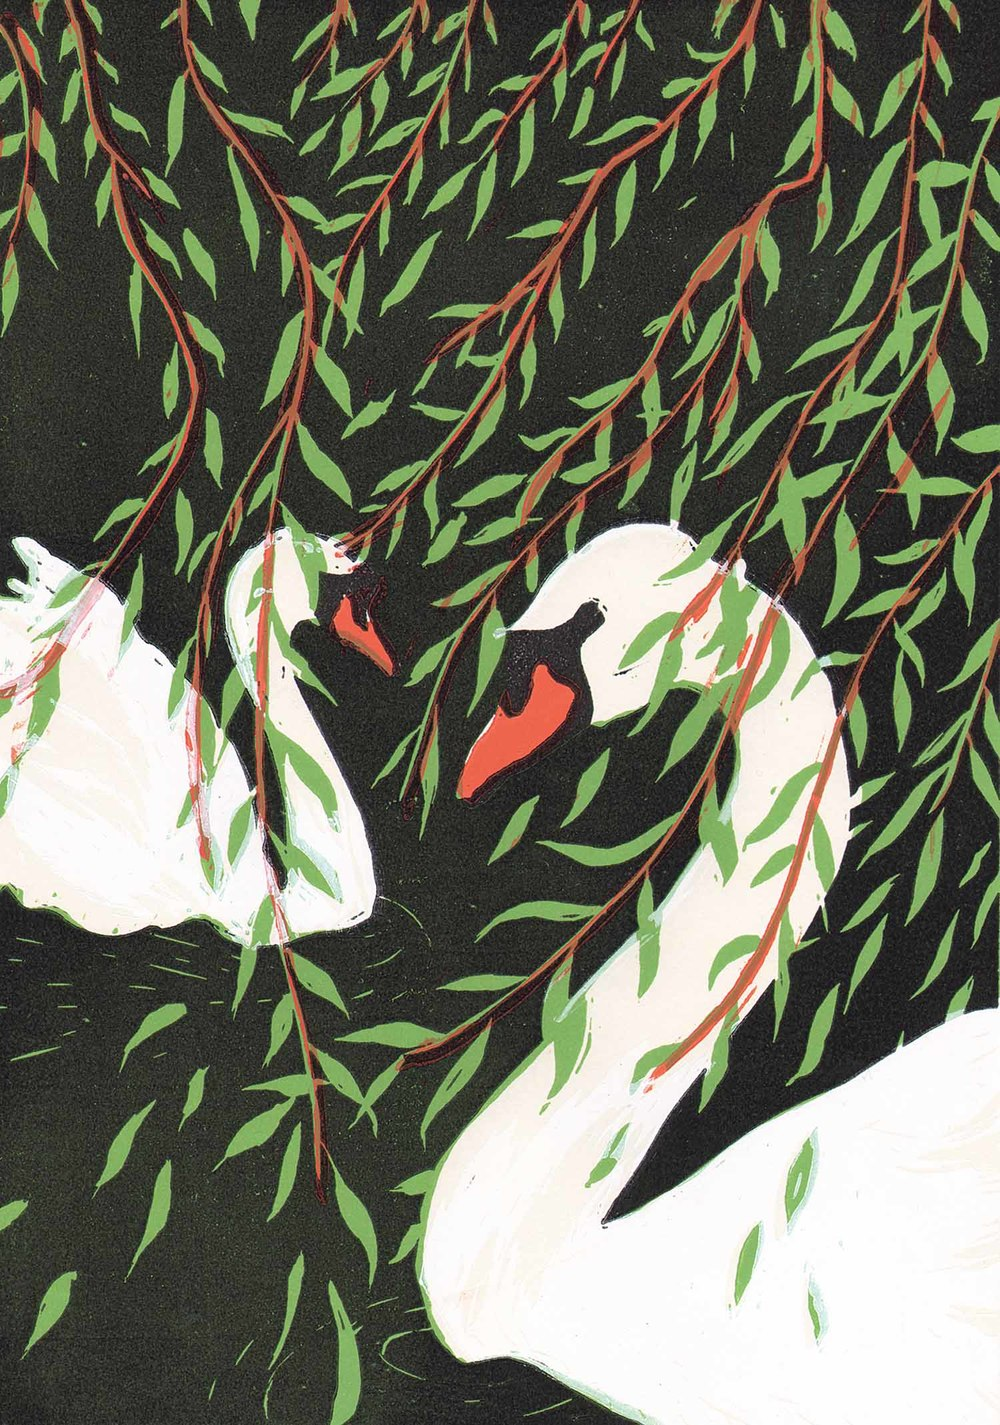 """Willows"" – original linocut print limited edition of 70, 21 x 30 cm."